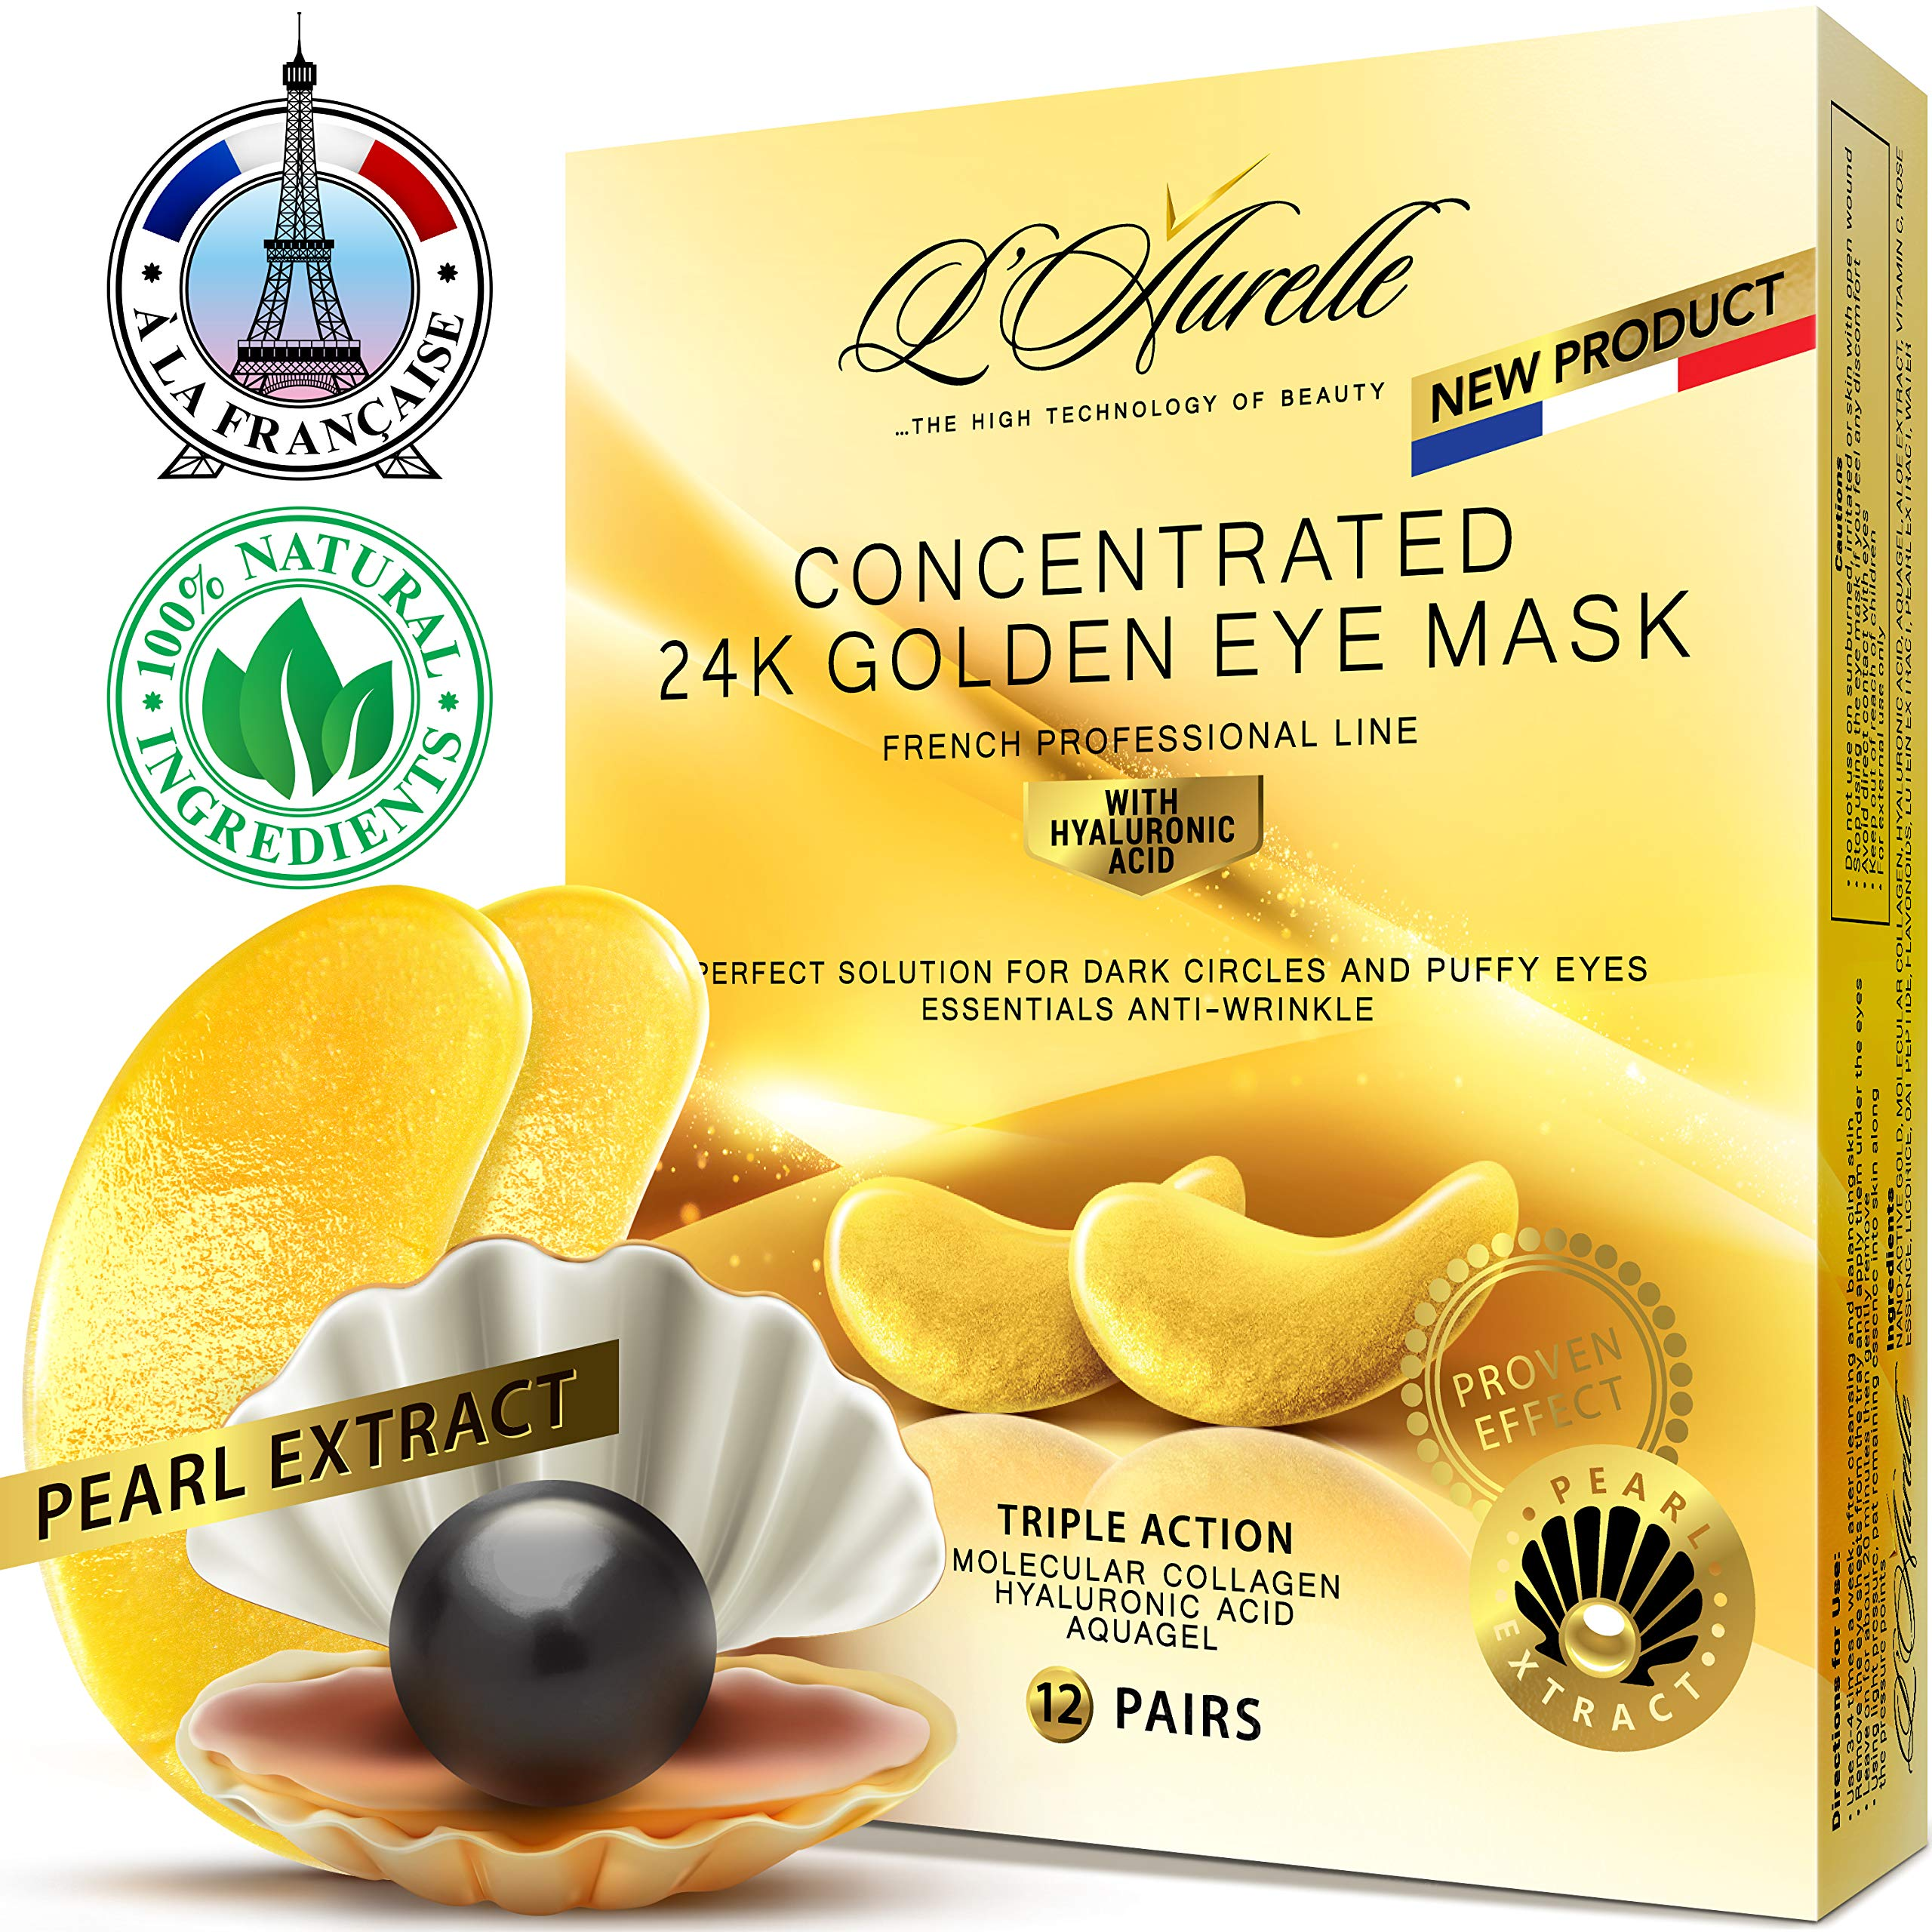 Gold Eye Mask Pearl Extract Under Eye Mask Anti-Aging Hyaluronic Acid 24k Gold Eye Patches Collagen Eye Mask Under Eye Pads for Moisturizing & Reducing Dark Circles Puffiness Wrinkles